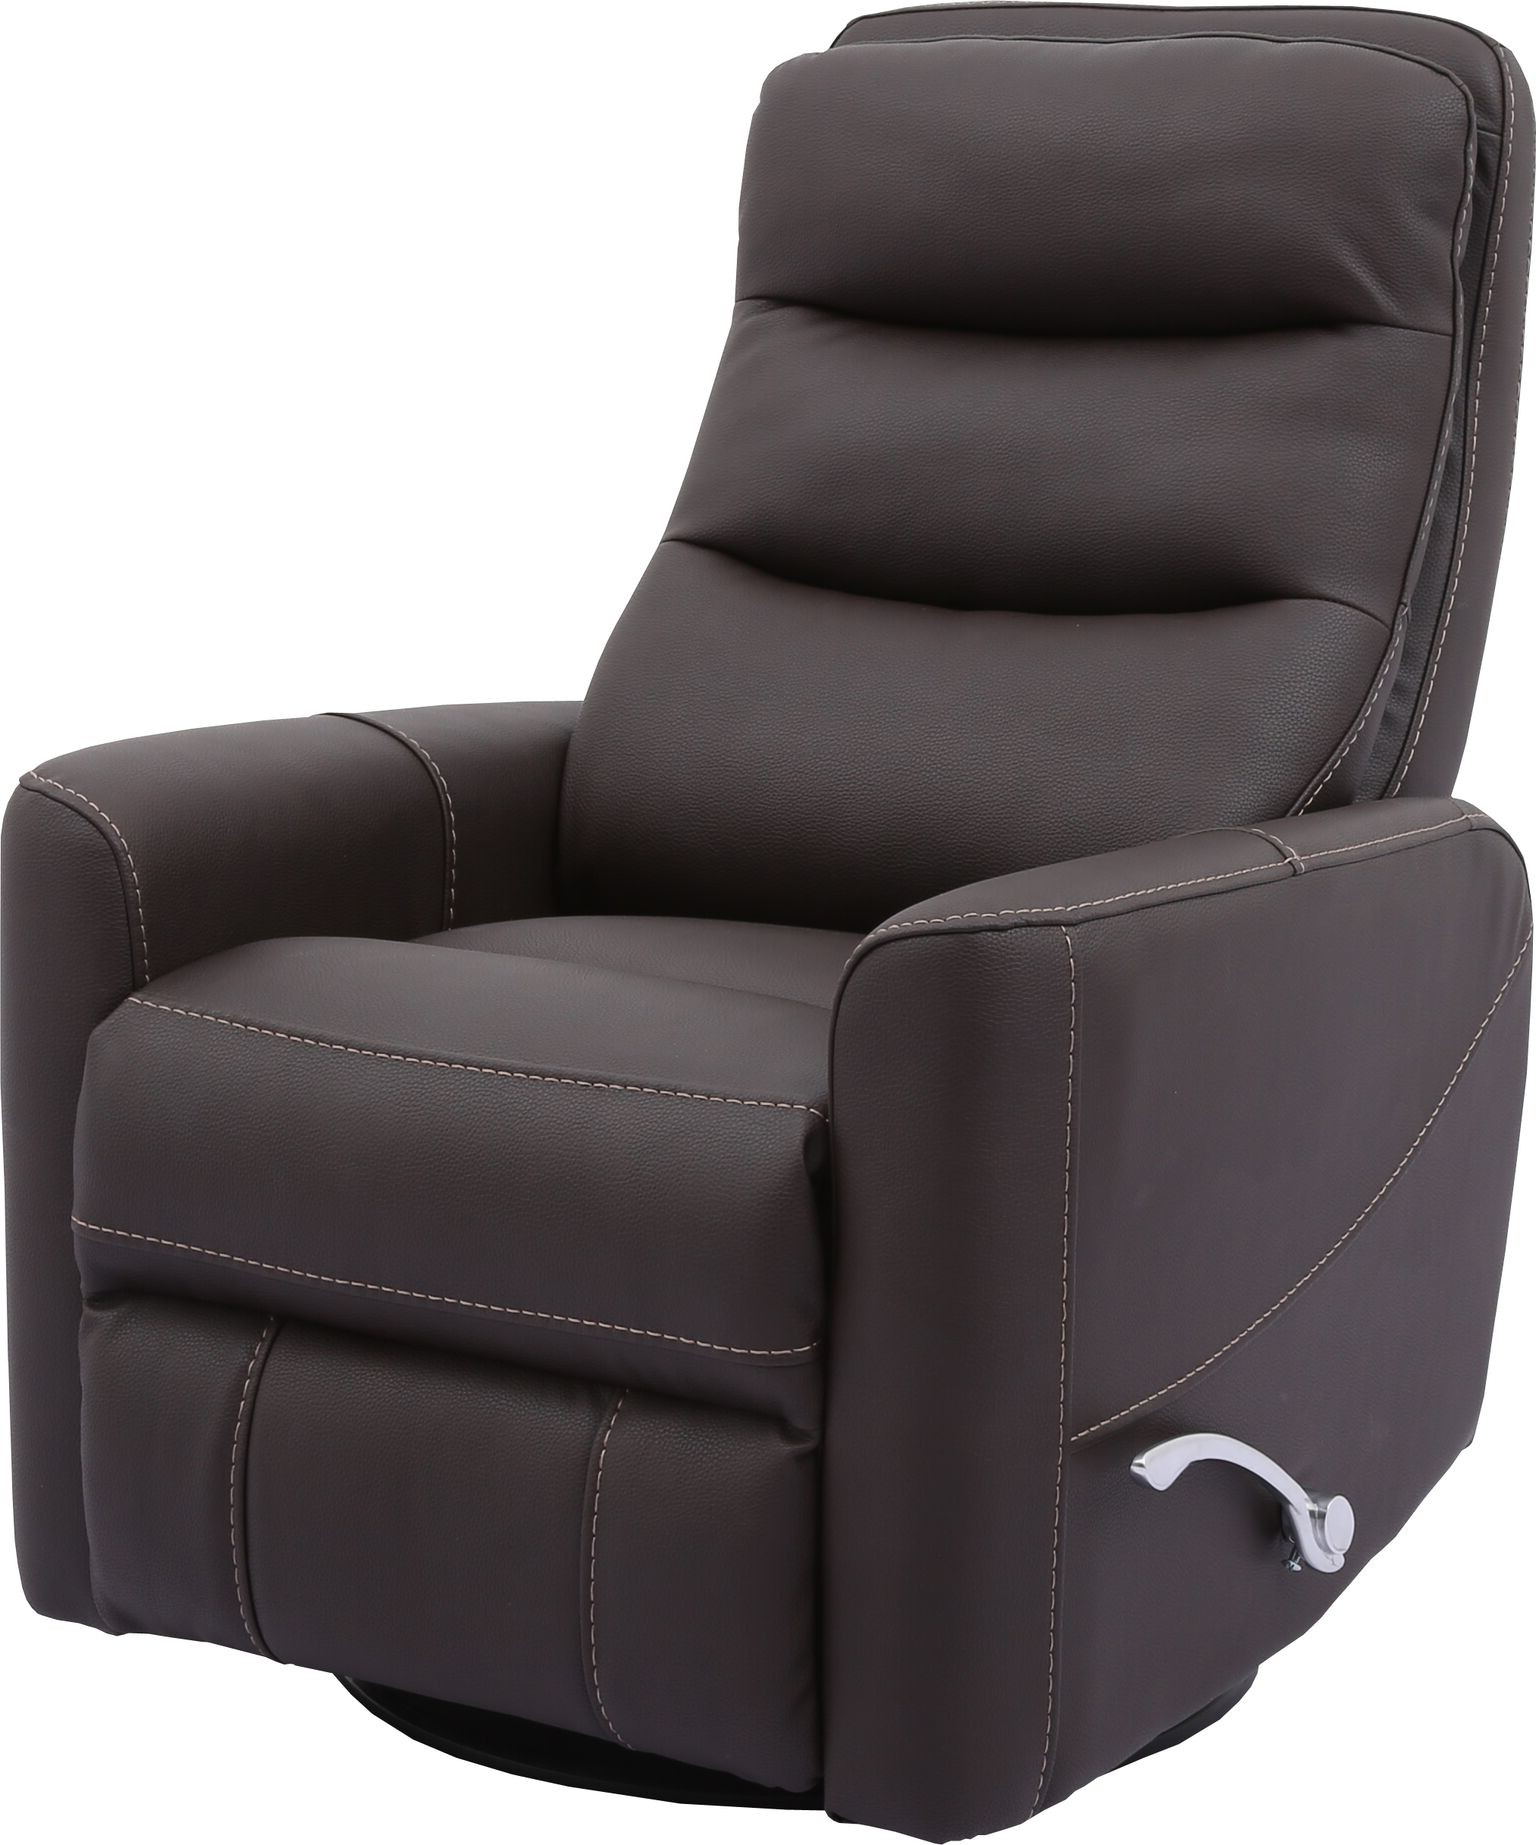 Famous Hercules  Chocolate  Swivel Glider Recliner With Articulating Headrest Throughout Hercules Oyster Swivel Glider Recliners (View 4 of 20)